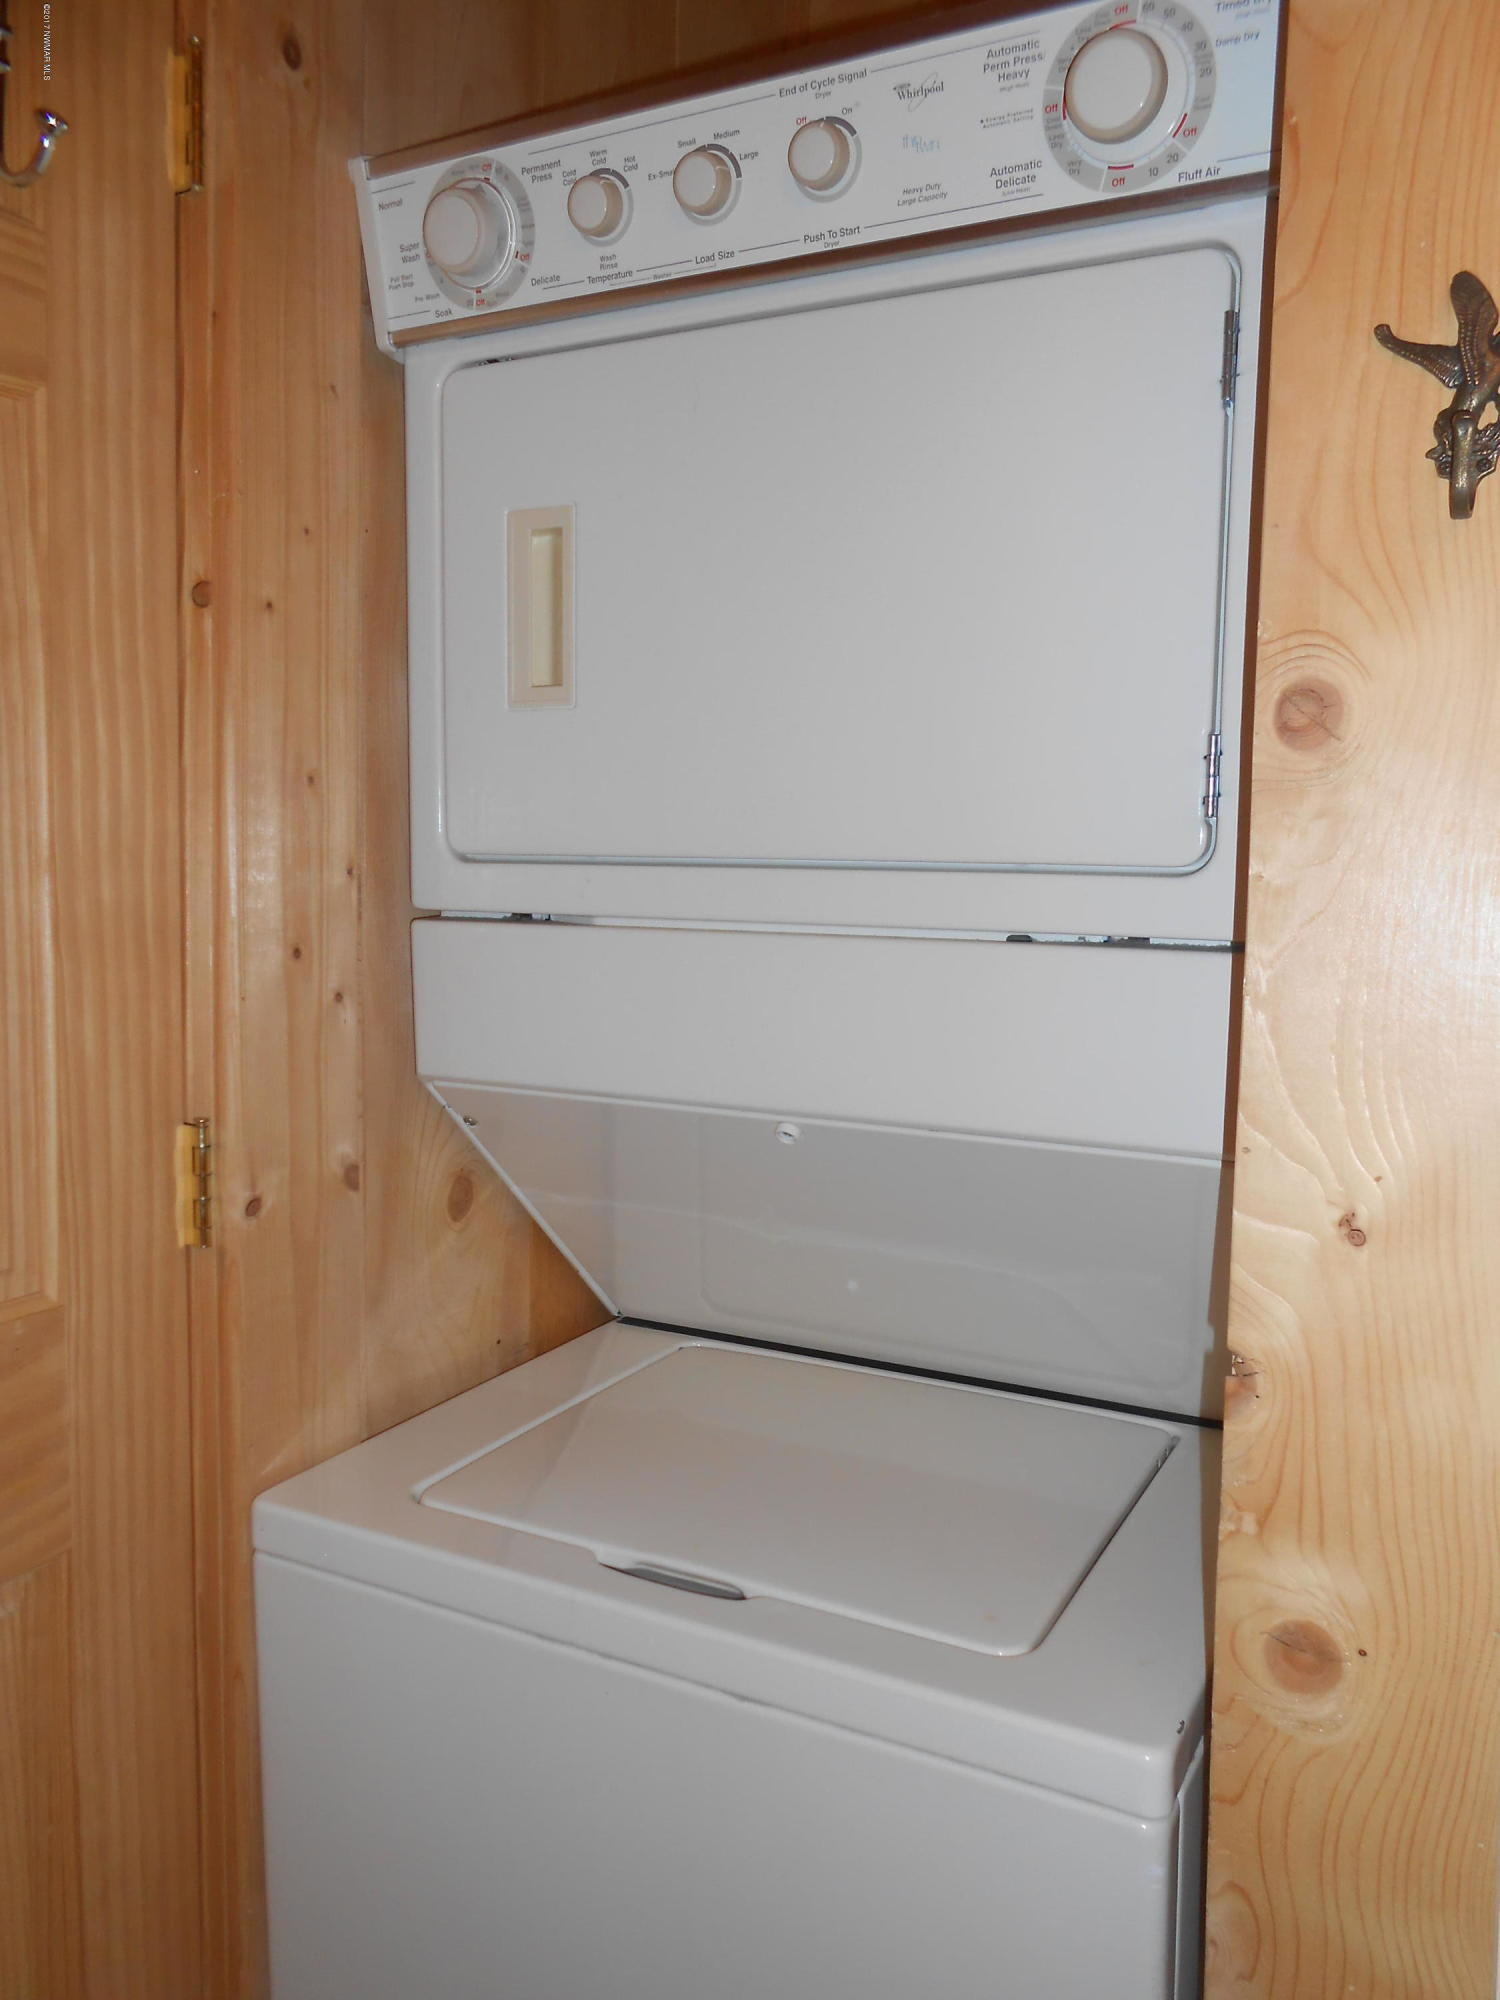 Stackable washer and dryer in bathroom